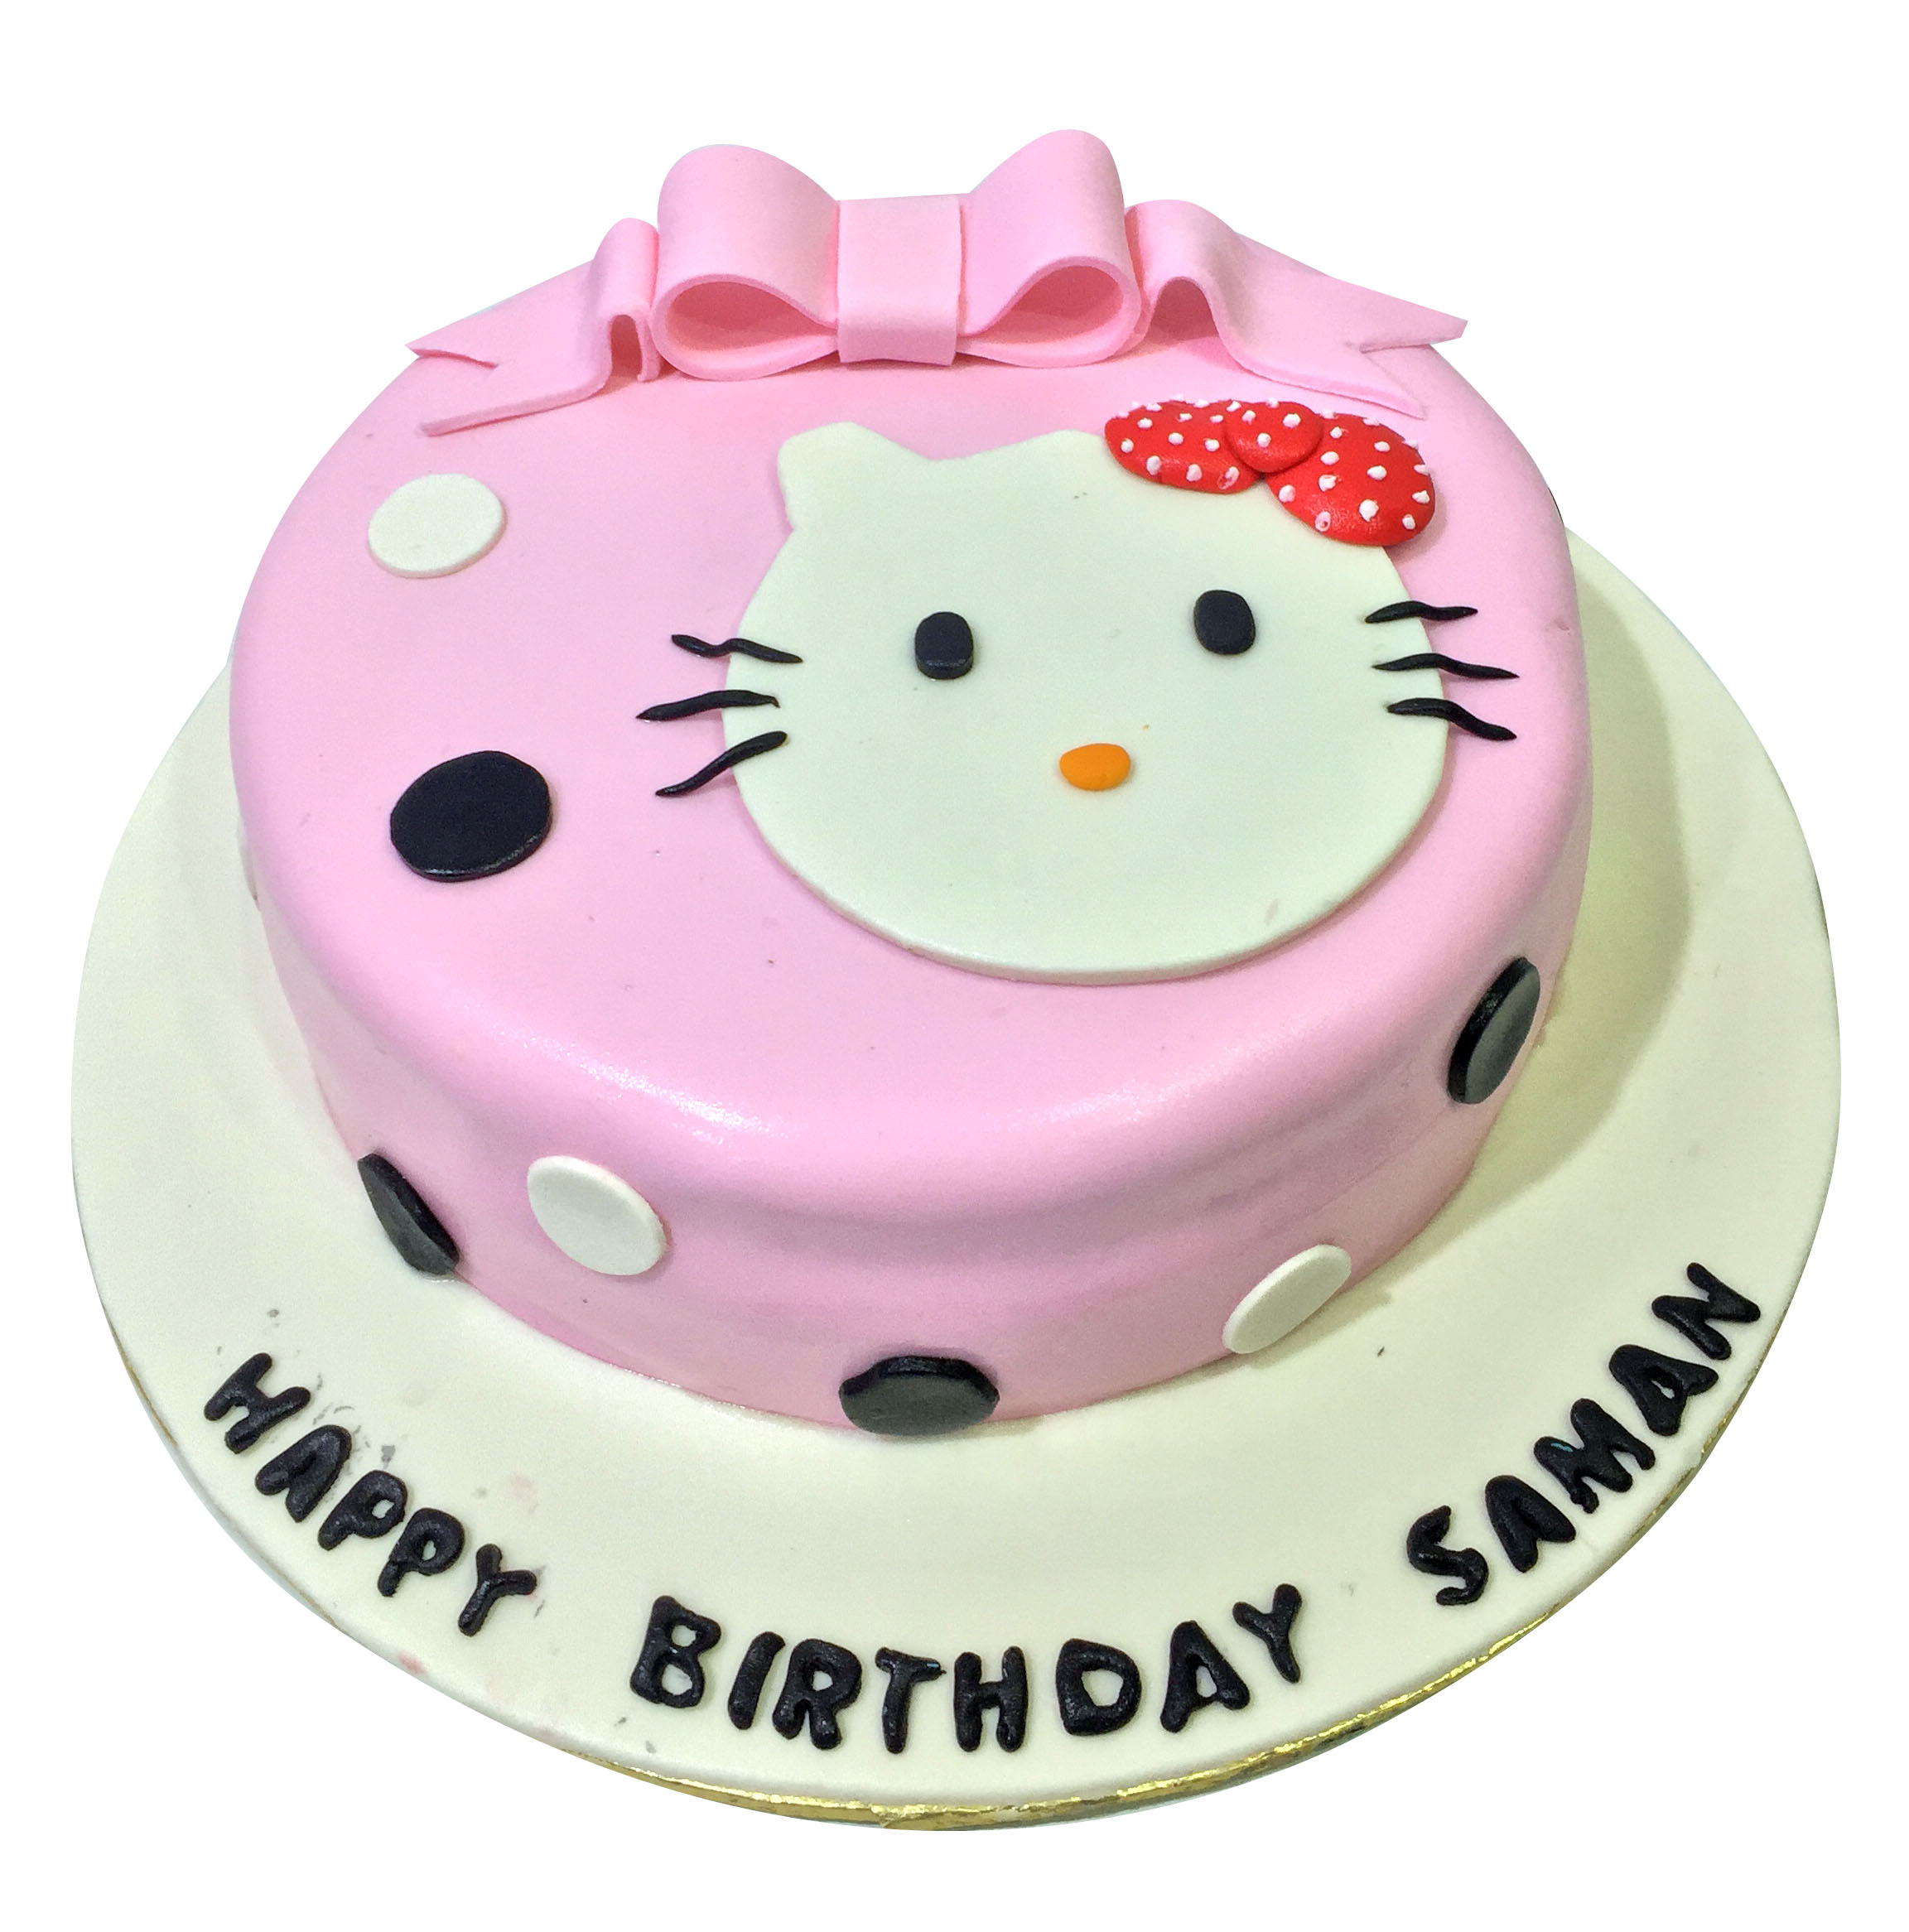 Swell Hello Kitty Birthday Theme Cake Bakisto Pk Delivery In Lahore Personalised Birthday Cards Paralily Jamesorg